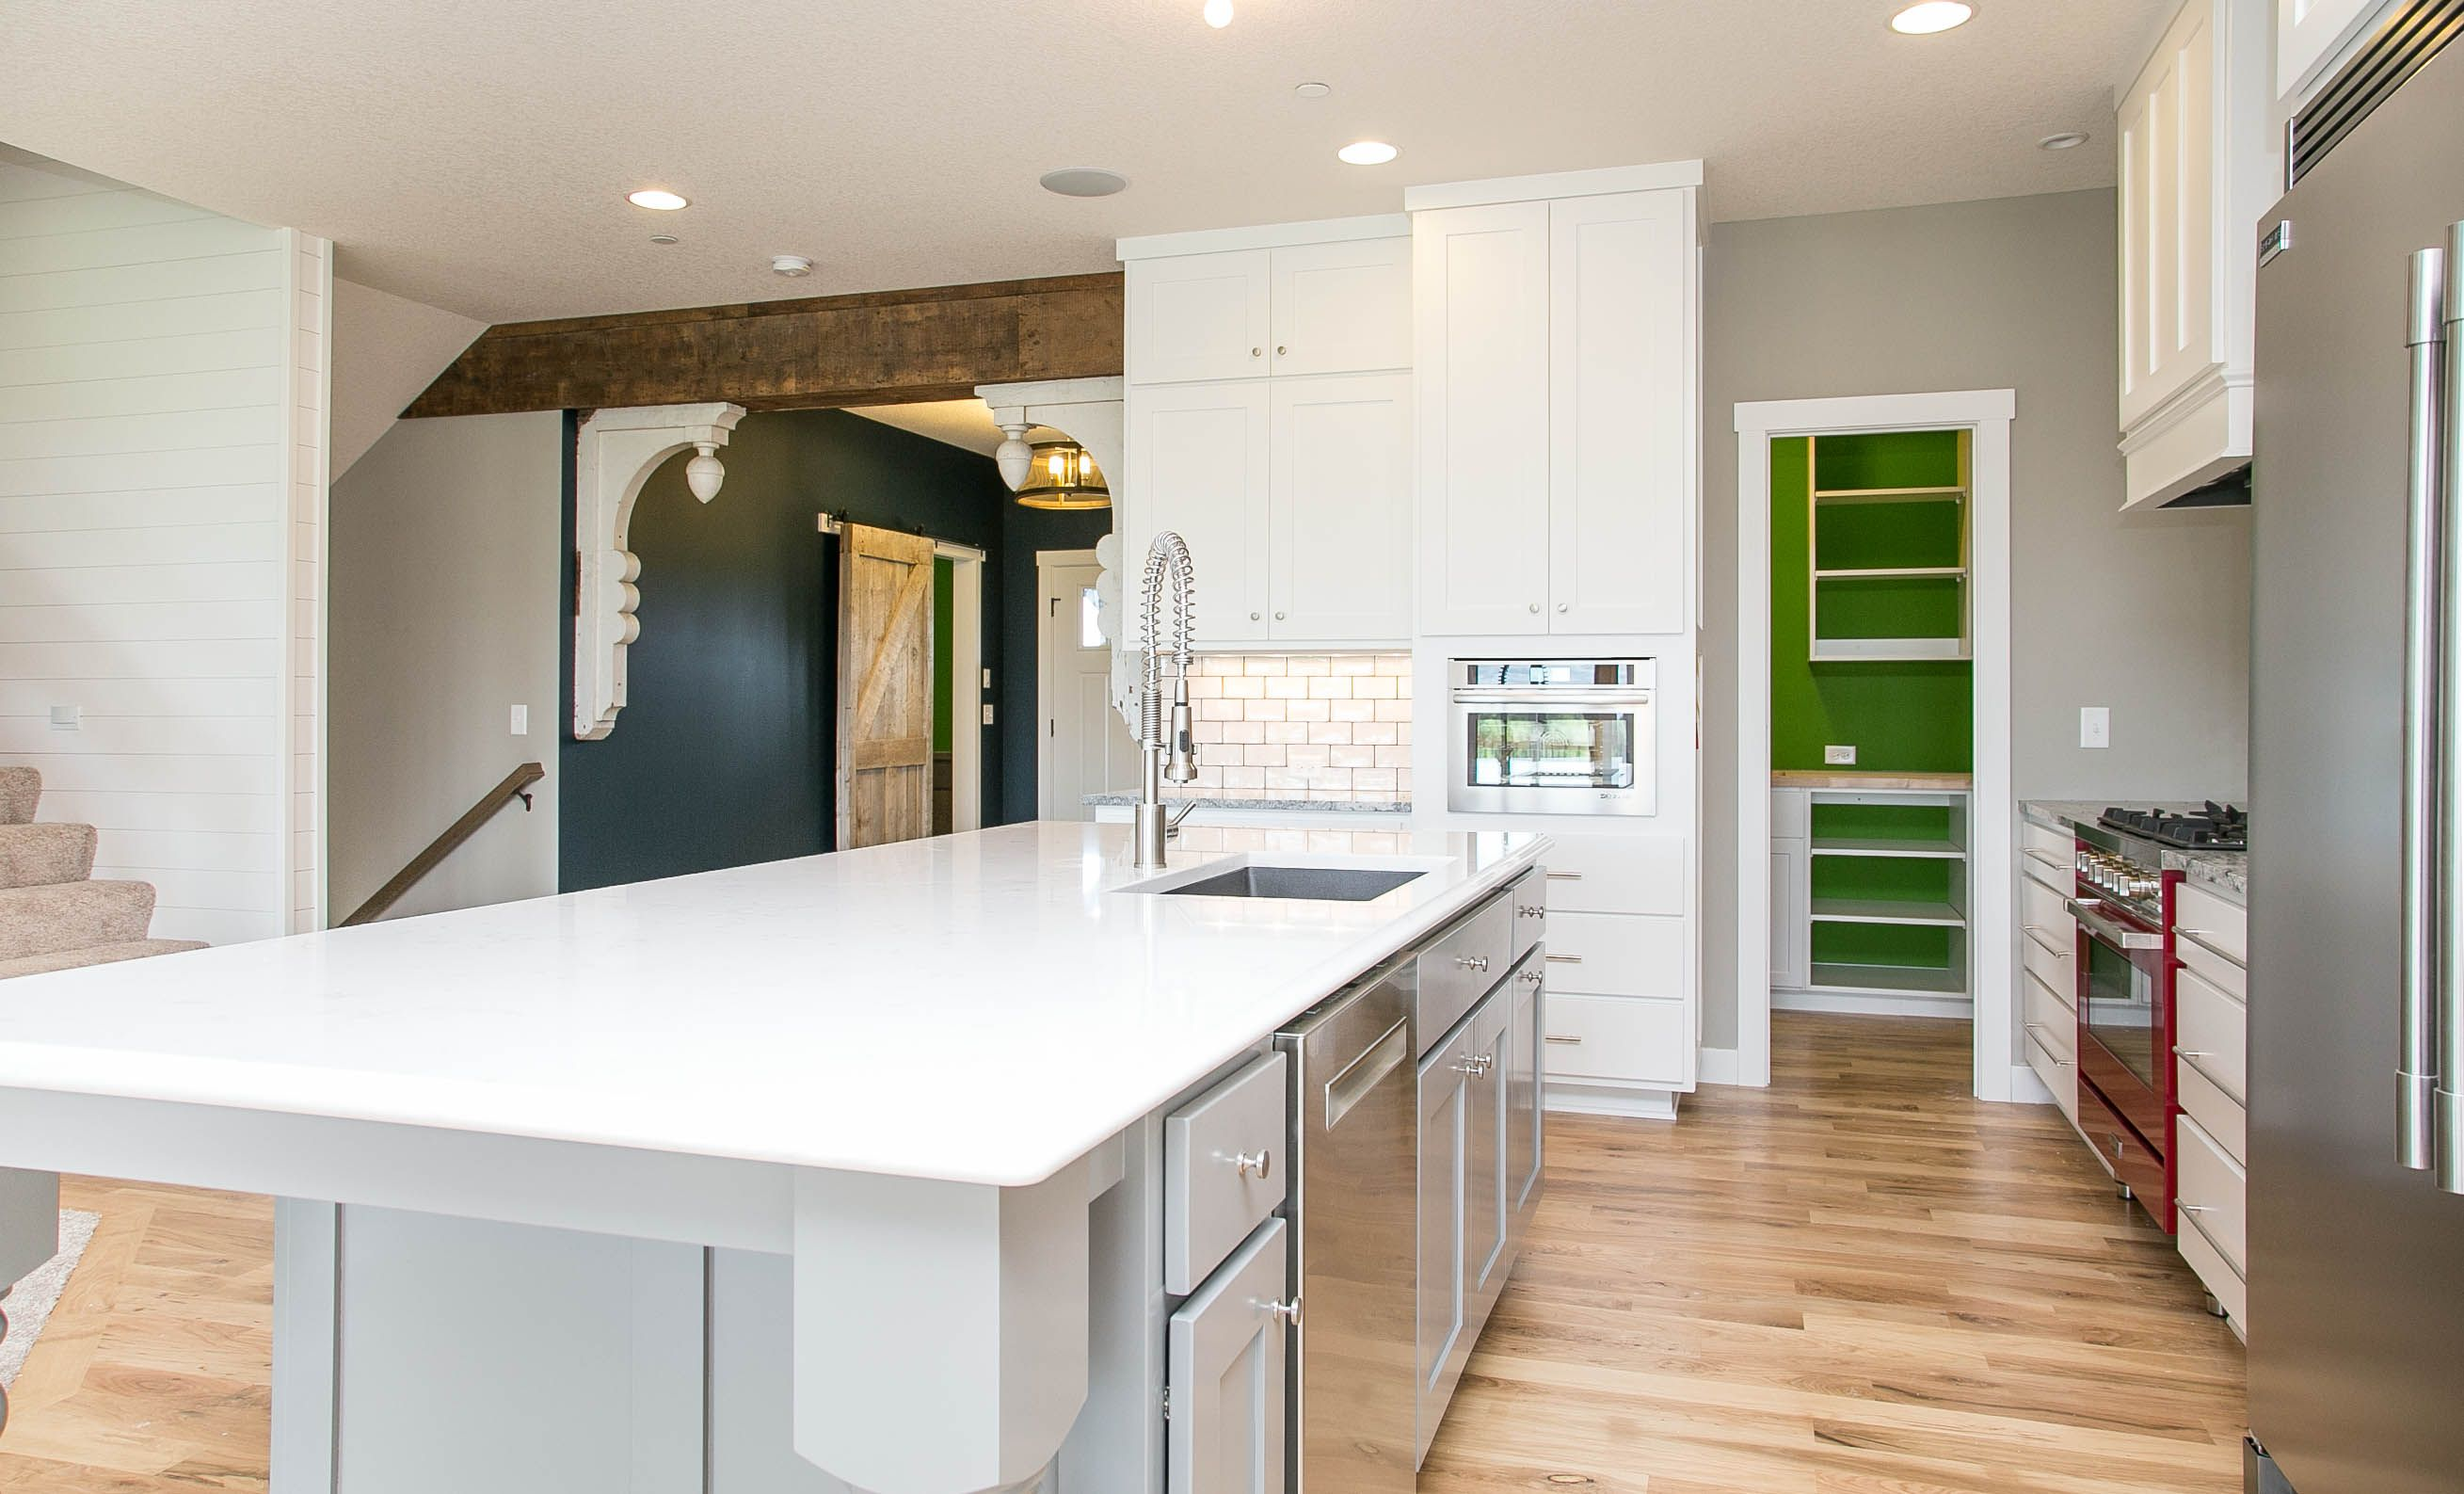 Custom kitchens are our specialty! This LDK kitchen is like no other! The enameled cabinetry and white ceramic backsplash create a clean, elegant look that is absolutely stunning!